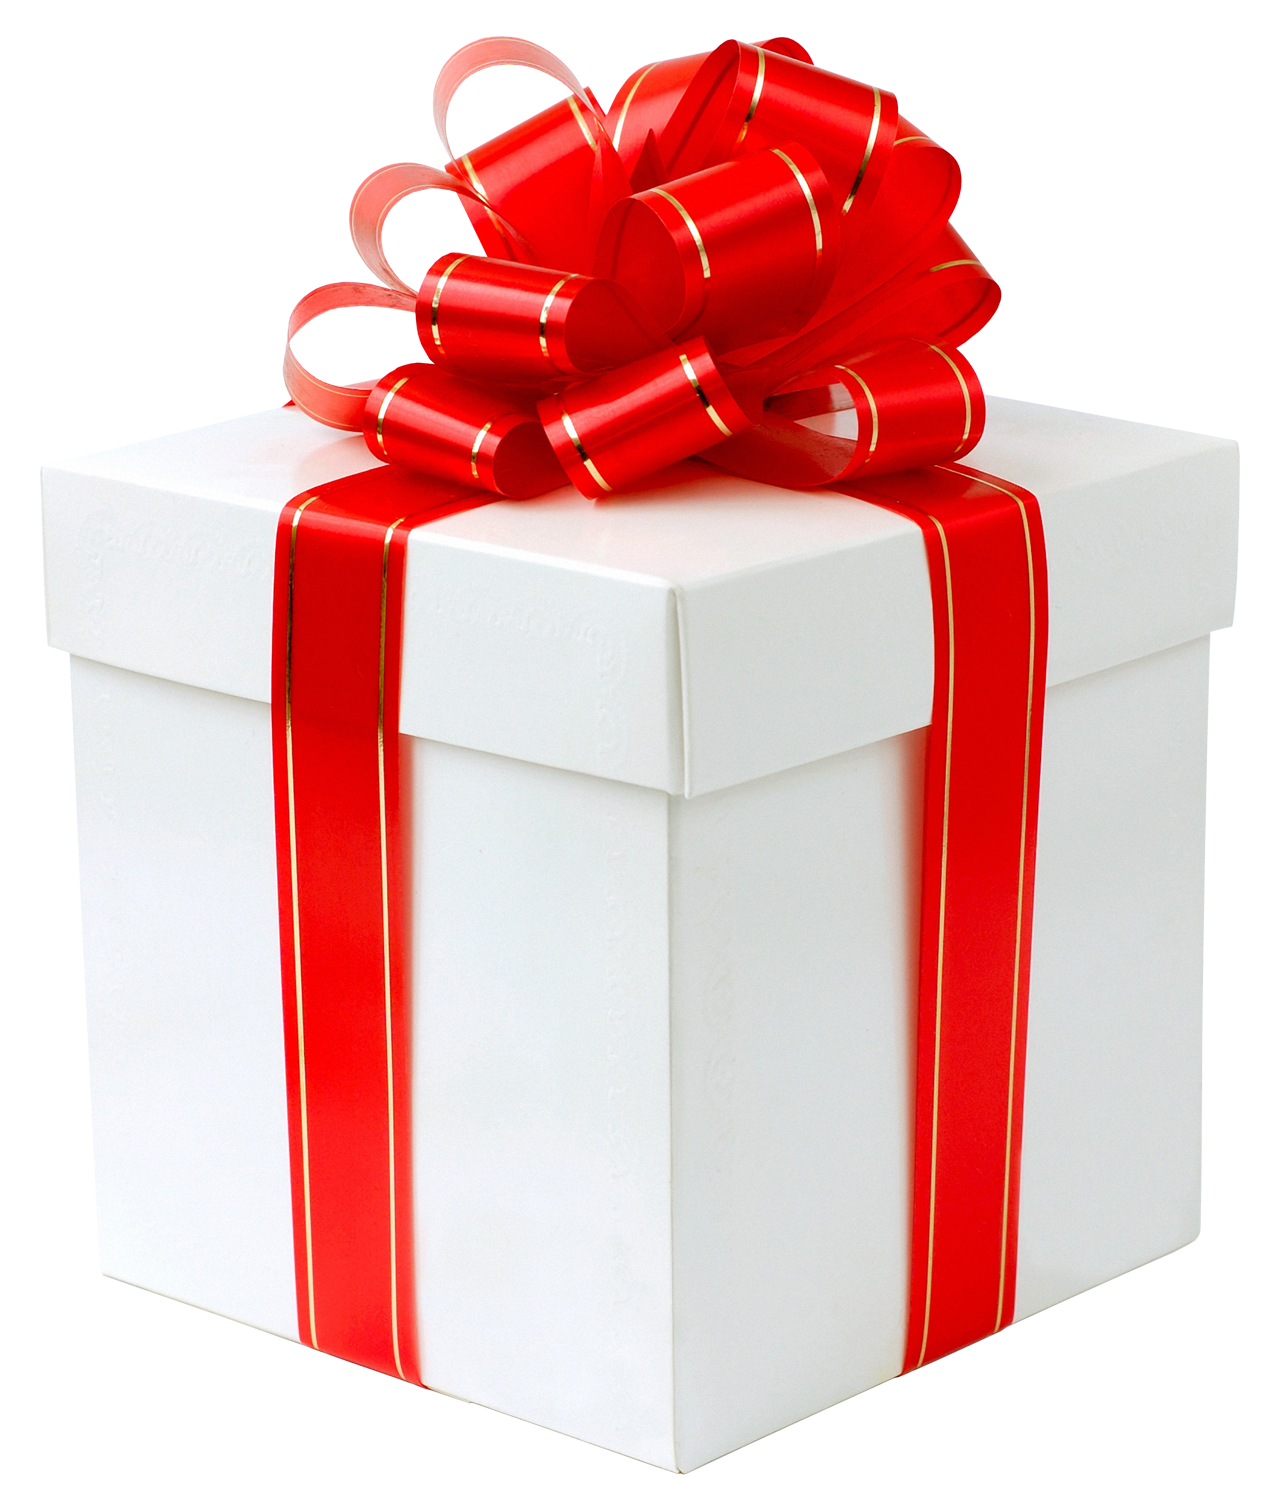 Transparent present gift. Png images all file